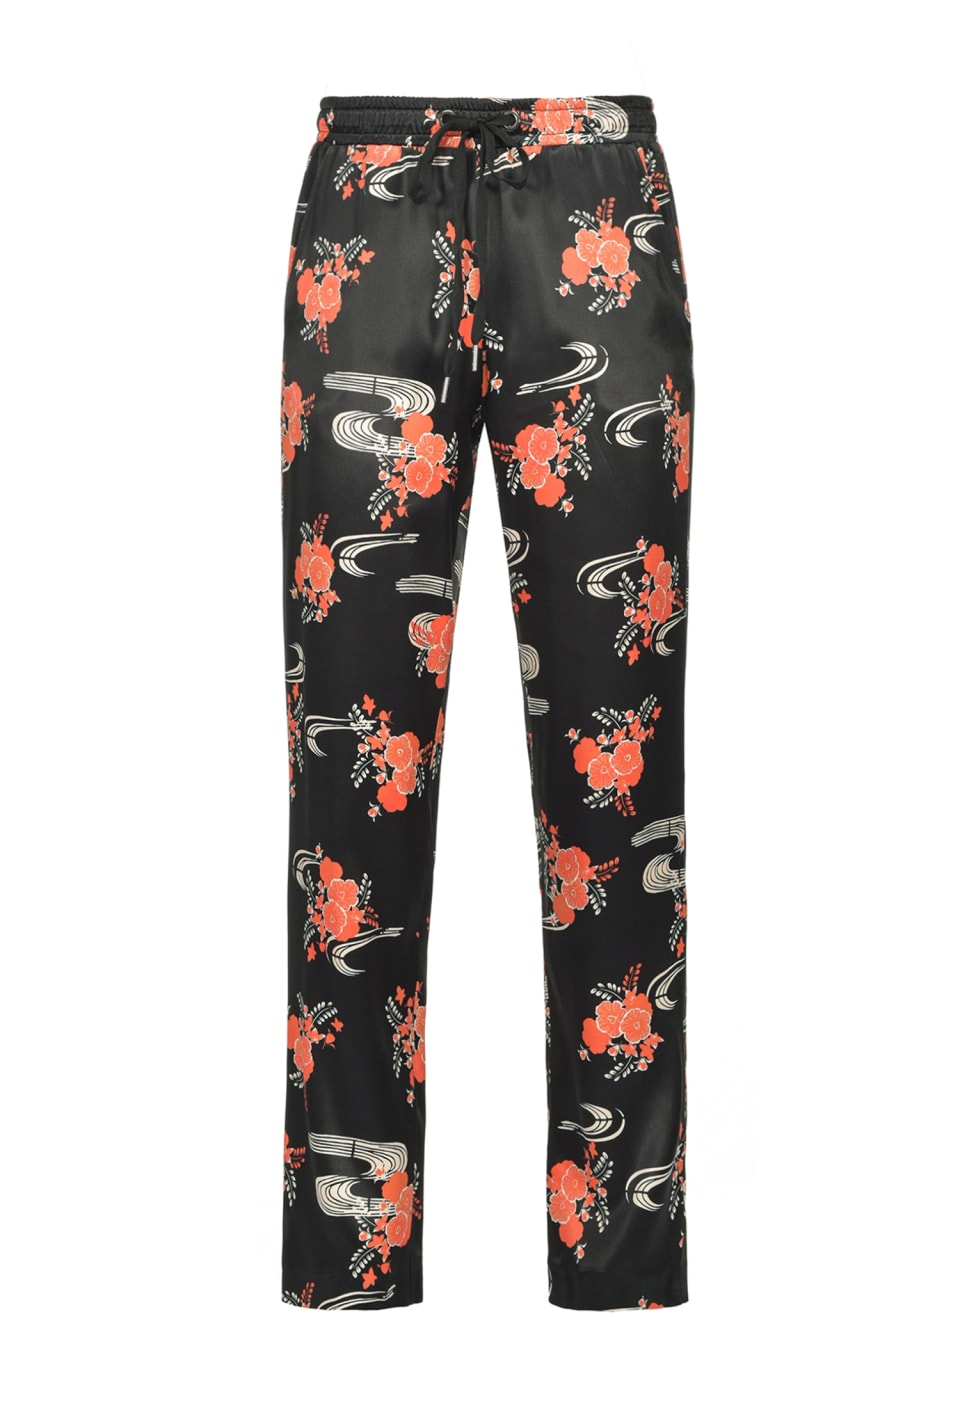 Japanese floral joggers